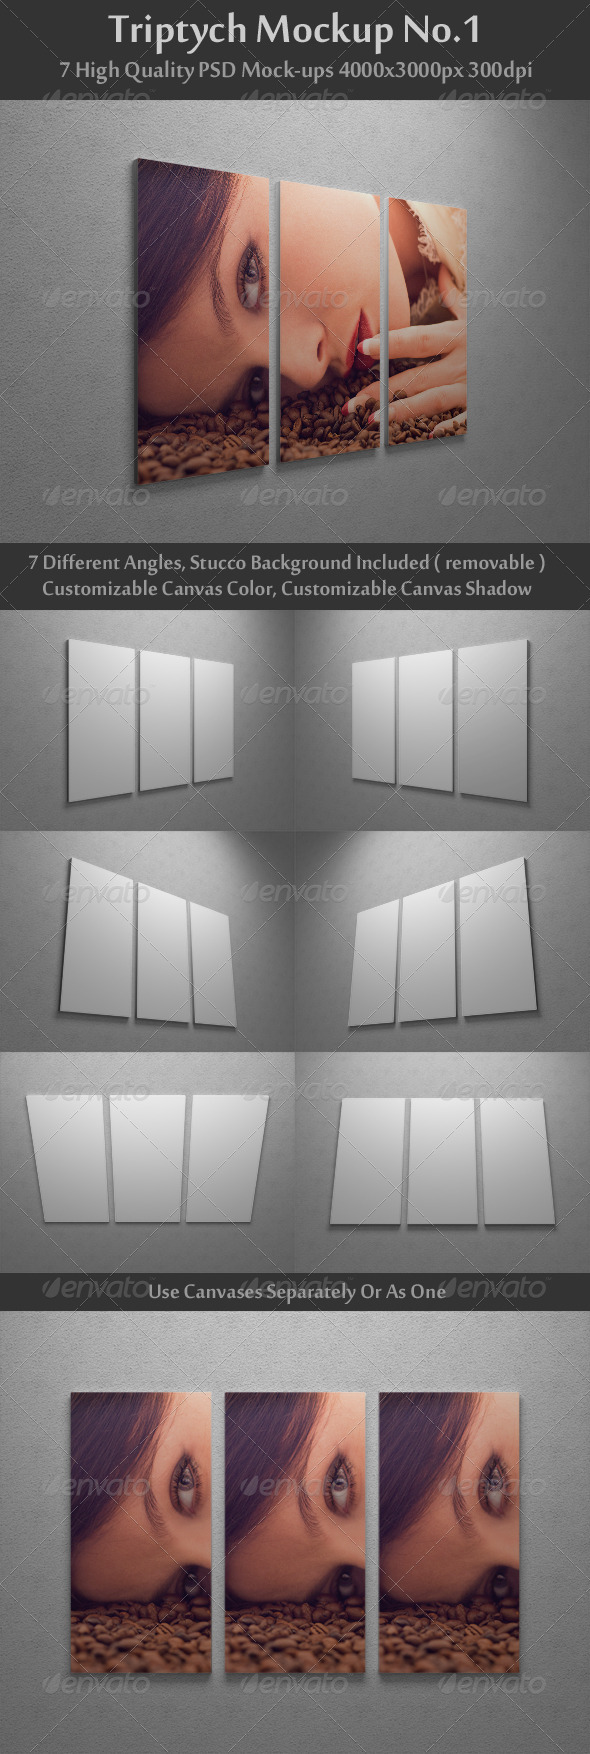 GraphicRiver Triptych Mock-Up No.1 1960475